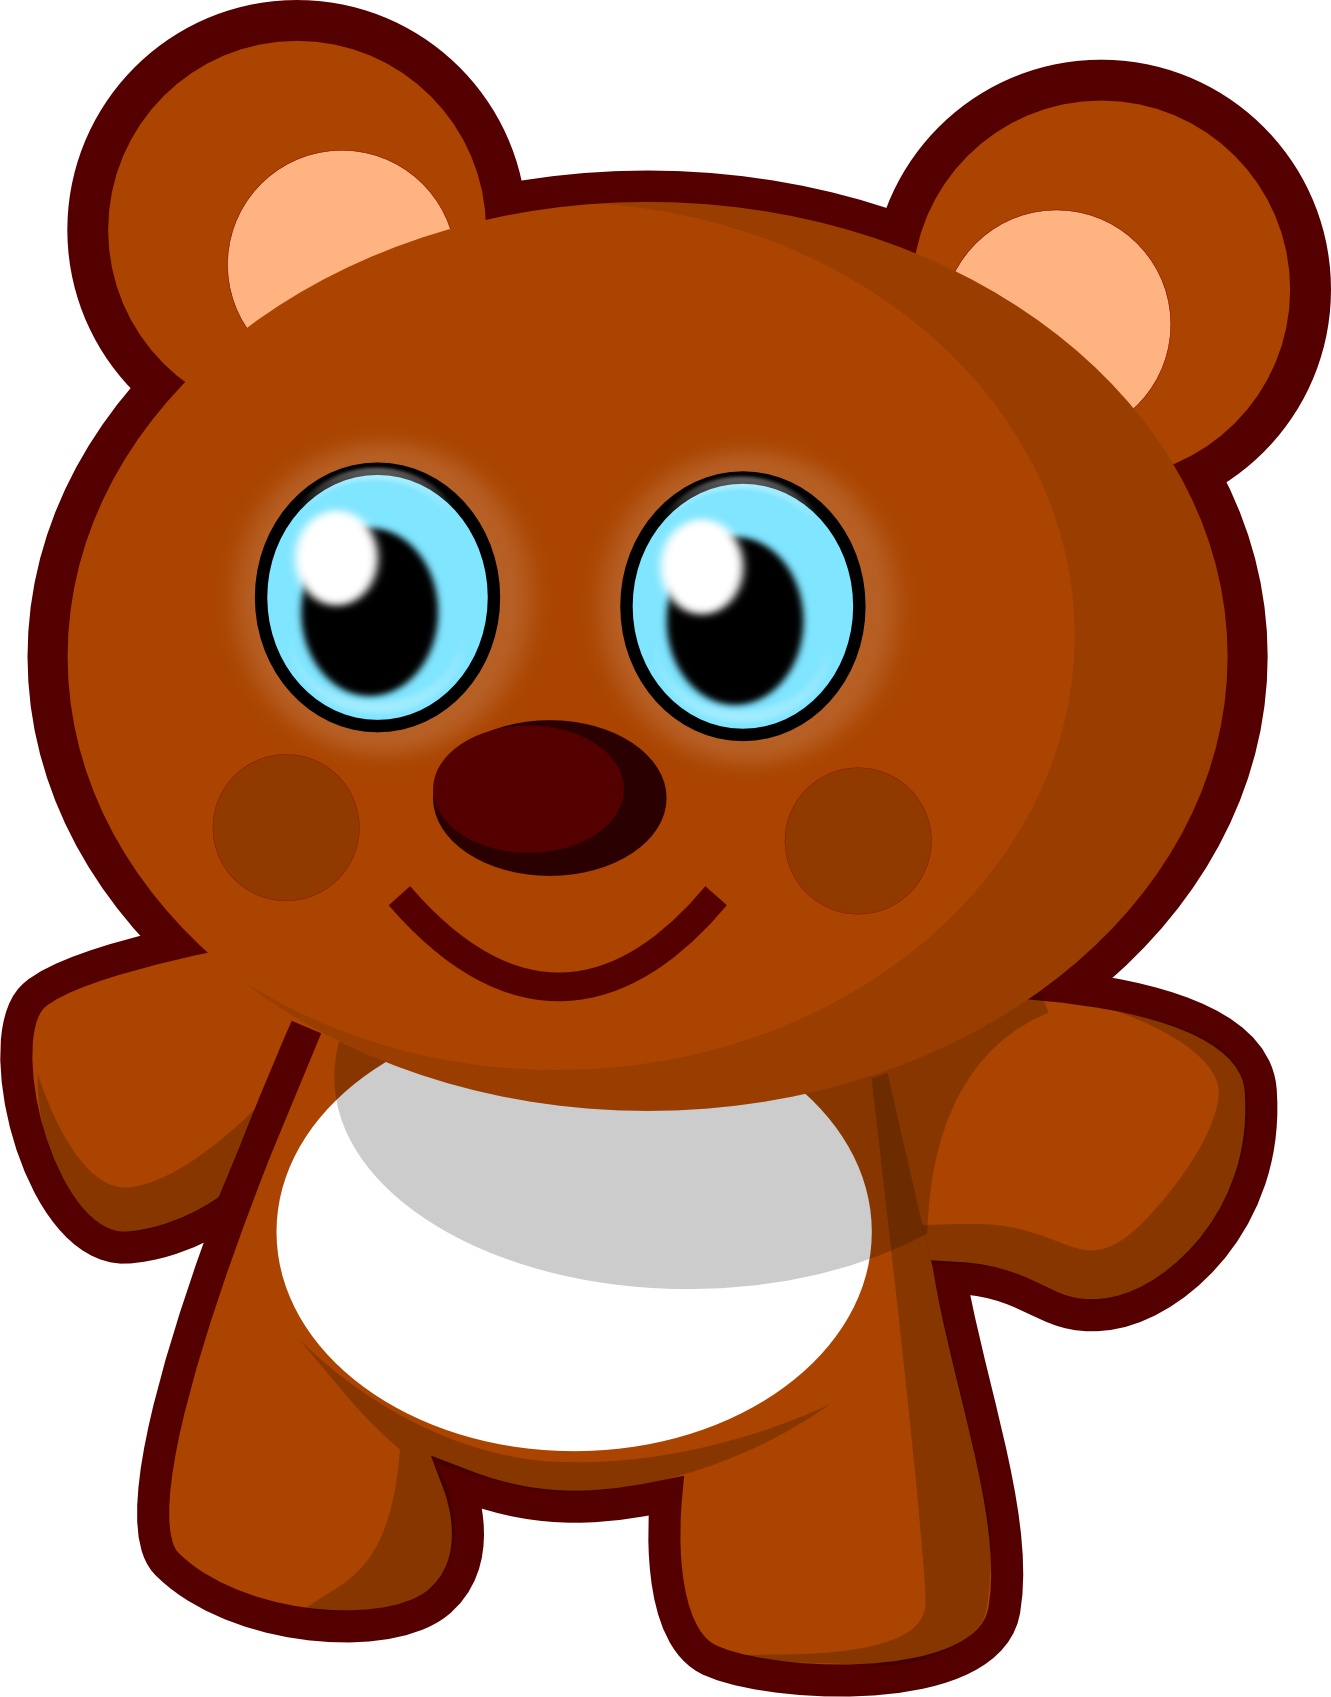 Cute animal clipart png. At getdrawings com free